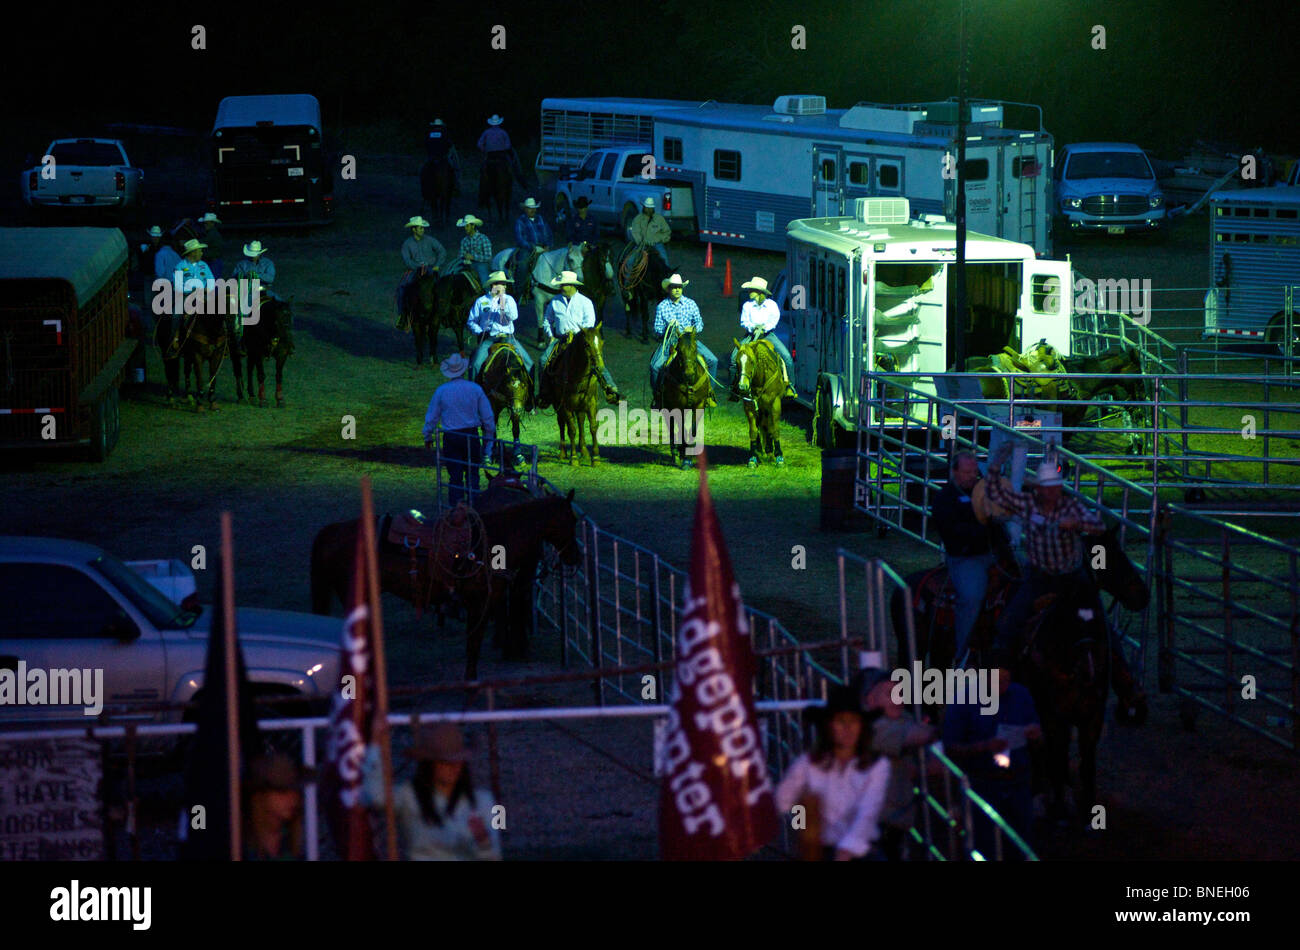 Cowboy e Cowgirl nel loro tempo libero in backstage a PRCA Rodeo in Smalltown Bridgeport, Texas, Stati Uniti d'America Immagini Stock